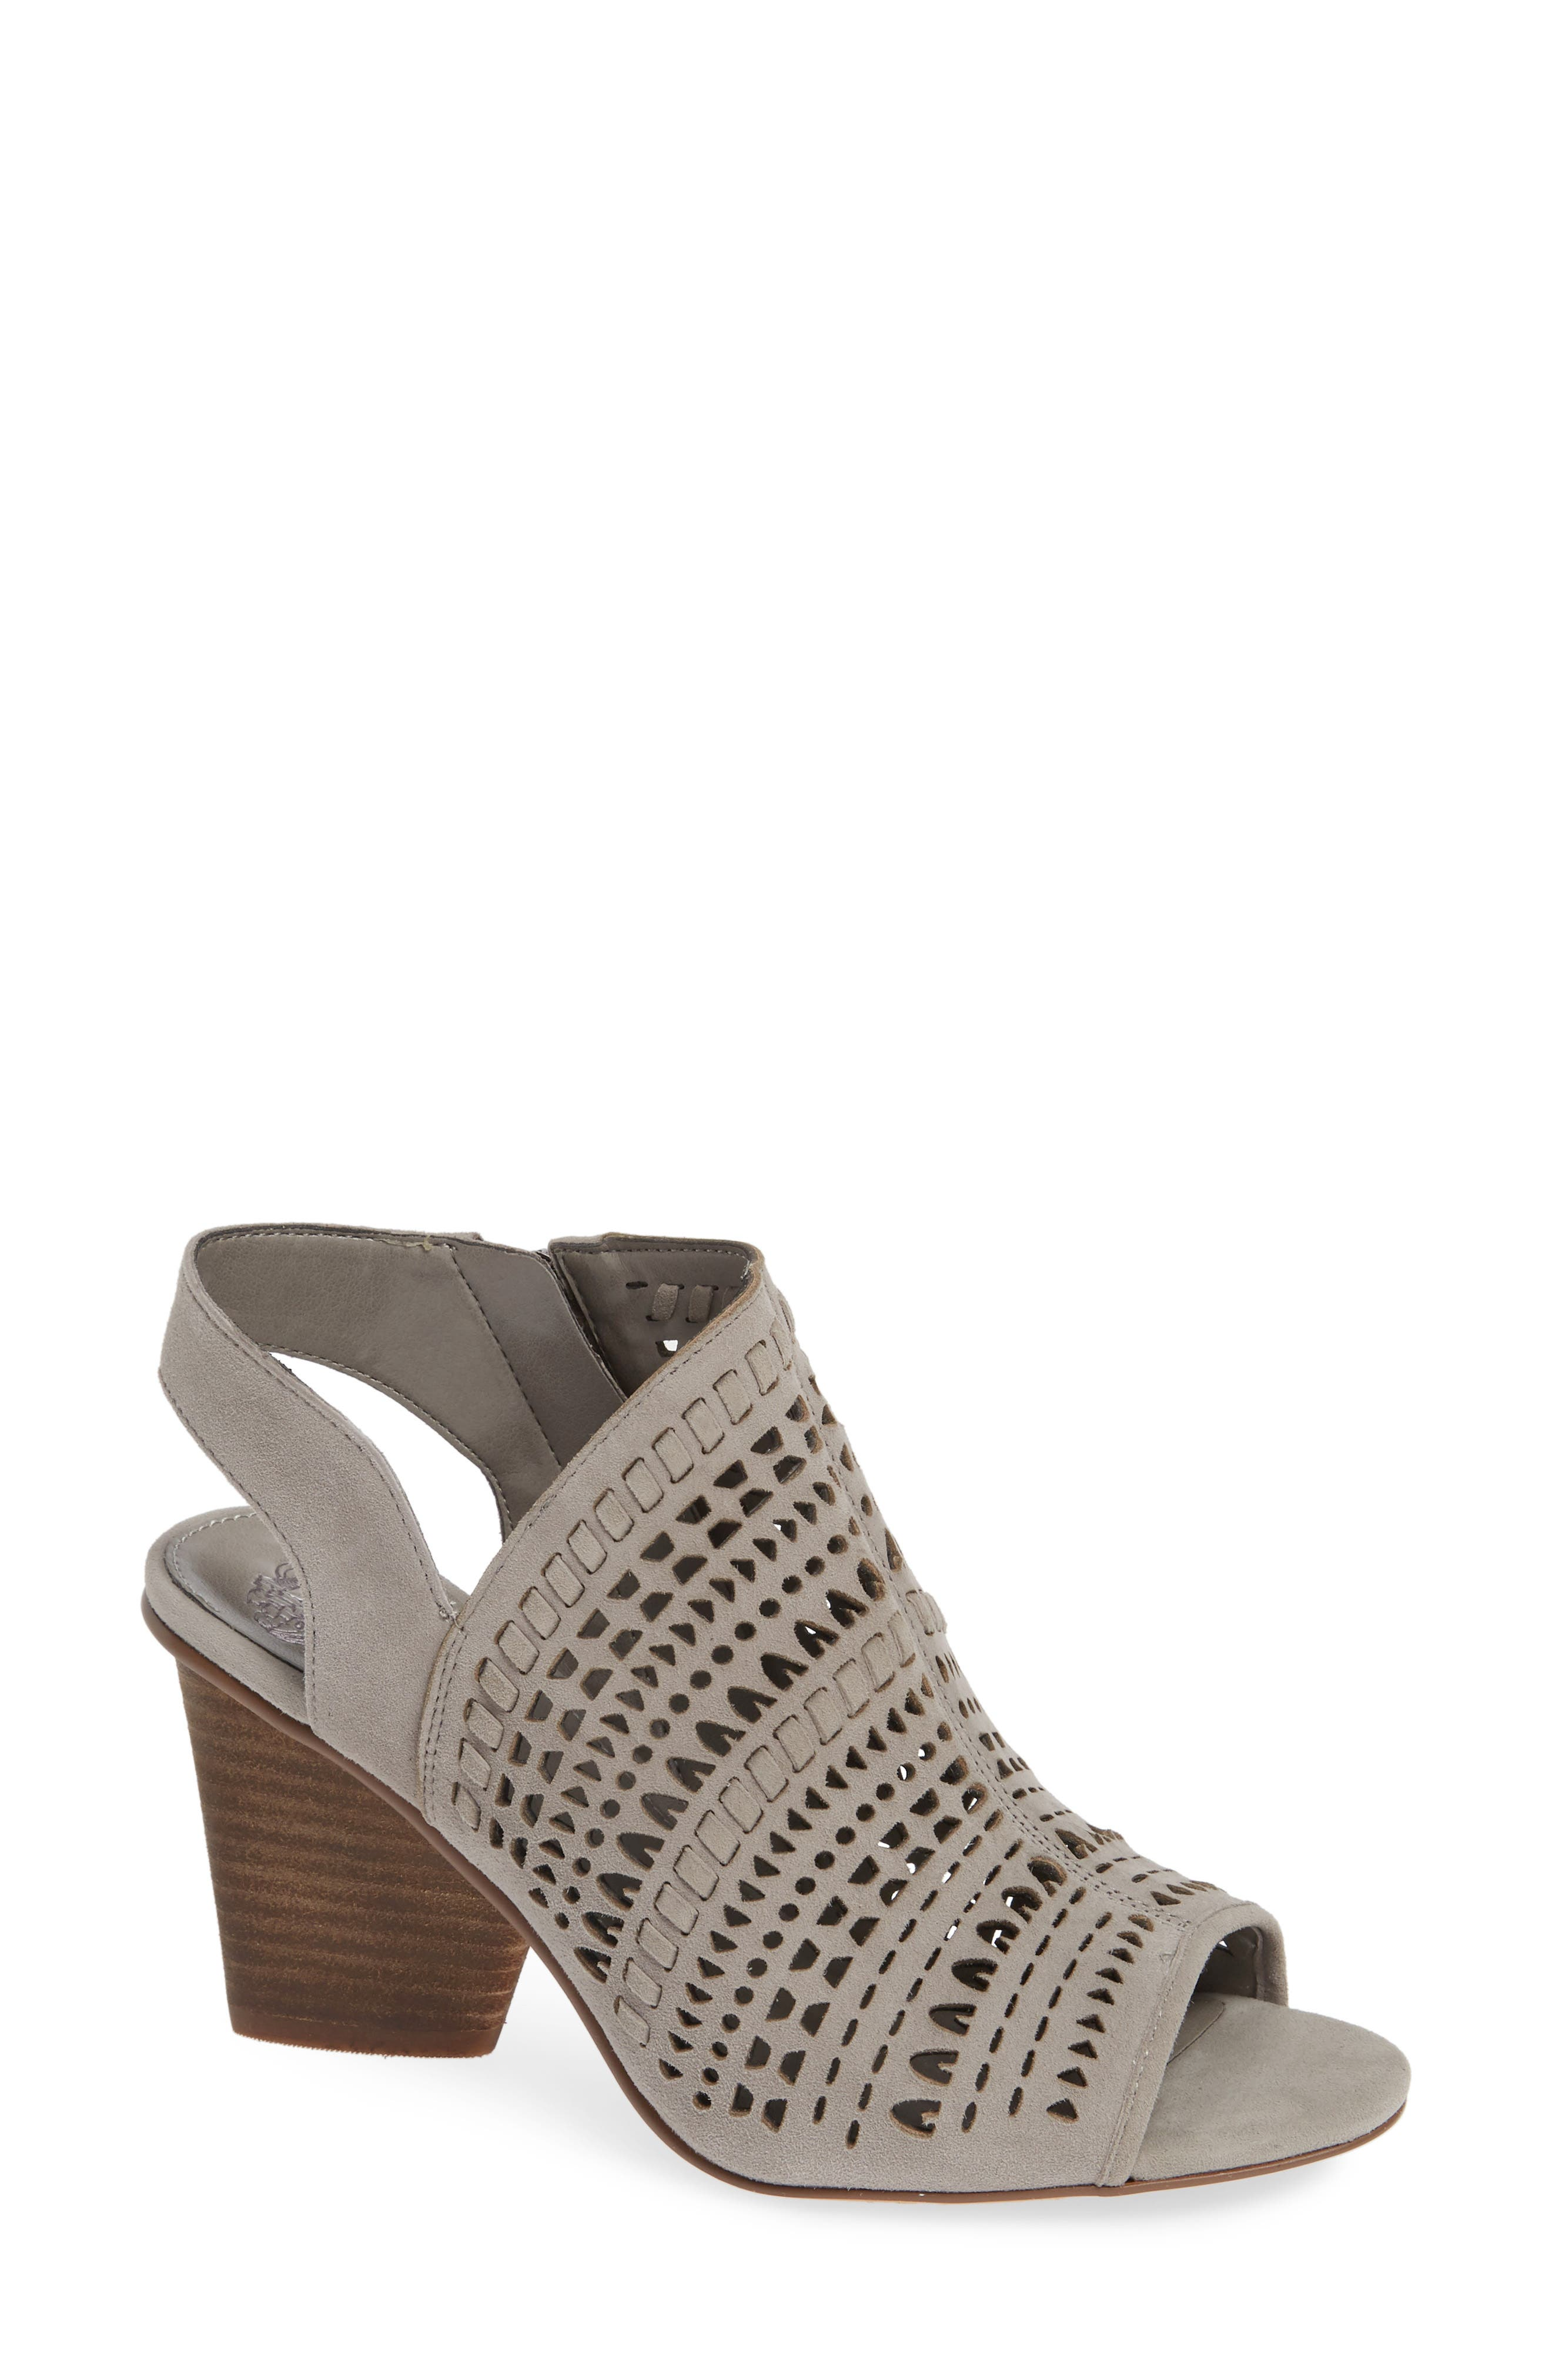 Vince Camuto Derechie Perforated Shield Sandal, Grey